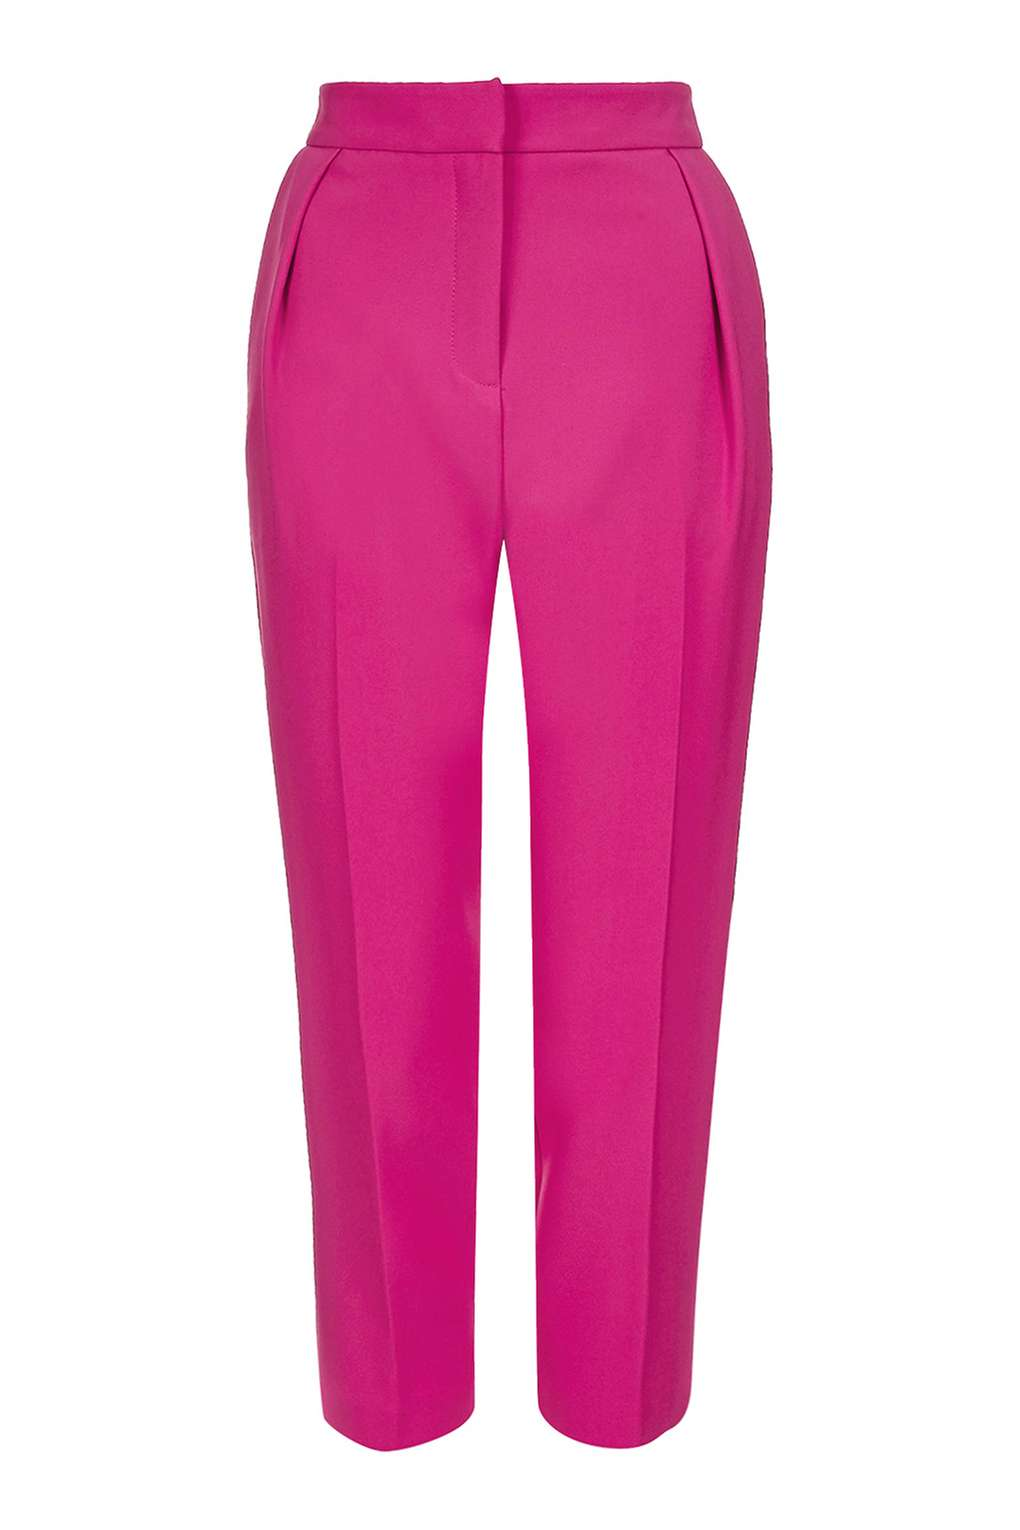 topshop-pink-trousers